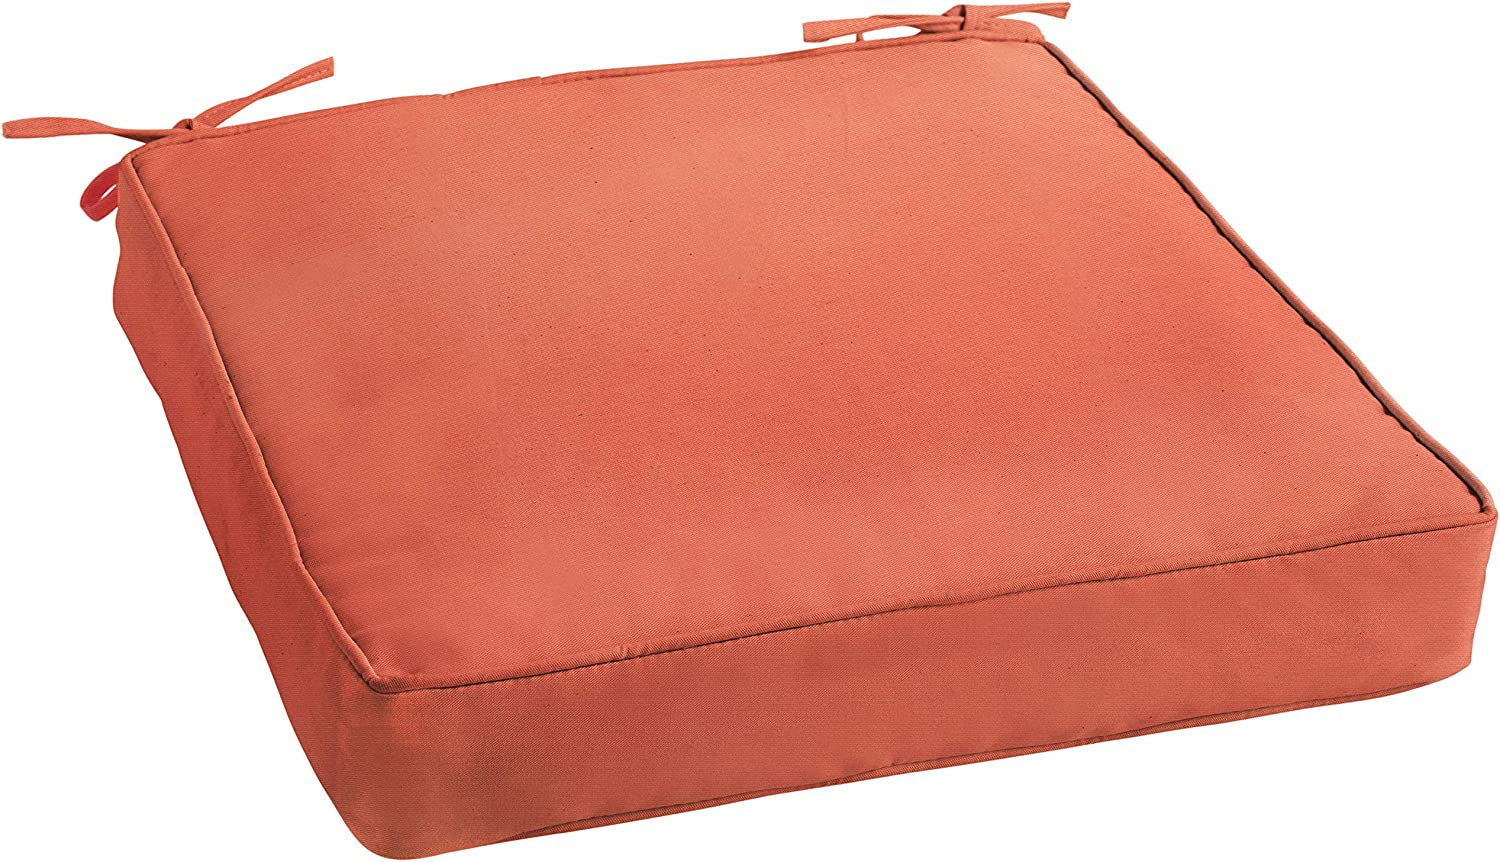 Mozaic AZCS2611 Indoor or Outdoor Sunbrella Square Chair Seat Cushions with Corded Edges and Tie Backs, 20 x 20 x 3, Canvas Melon Coral Orange